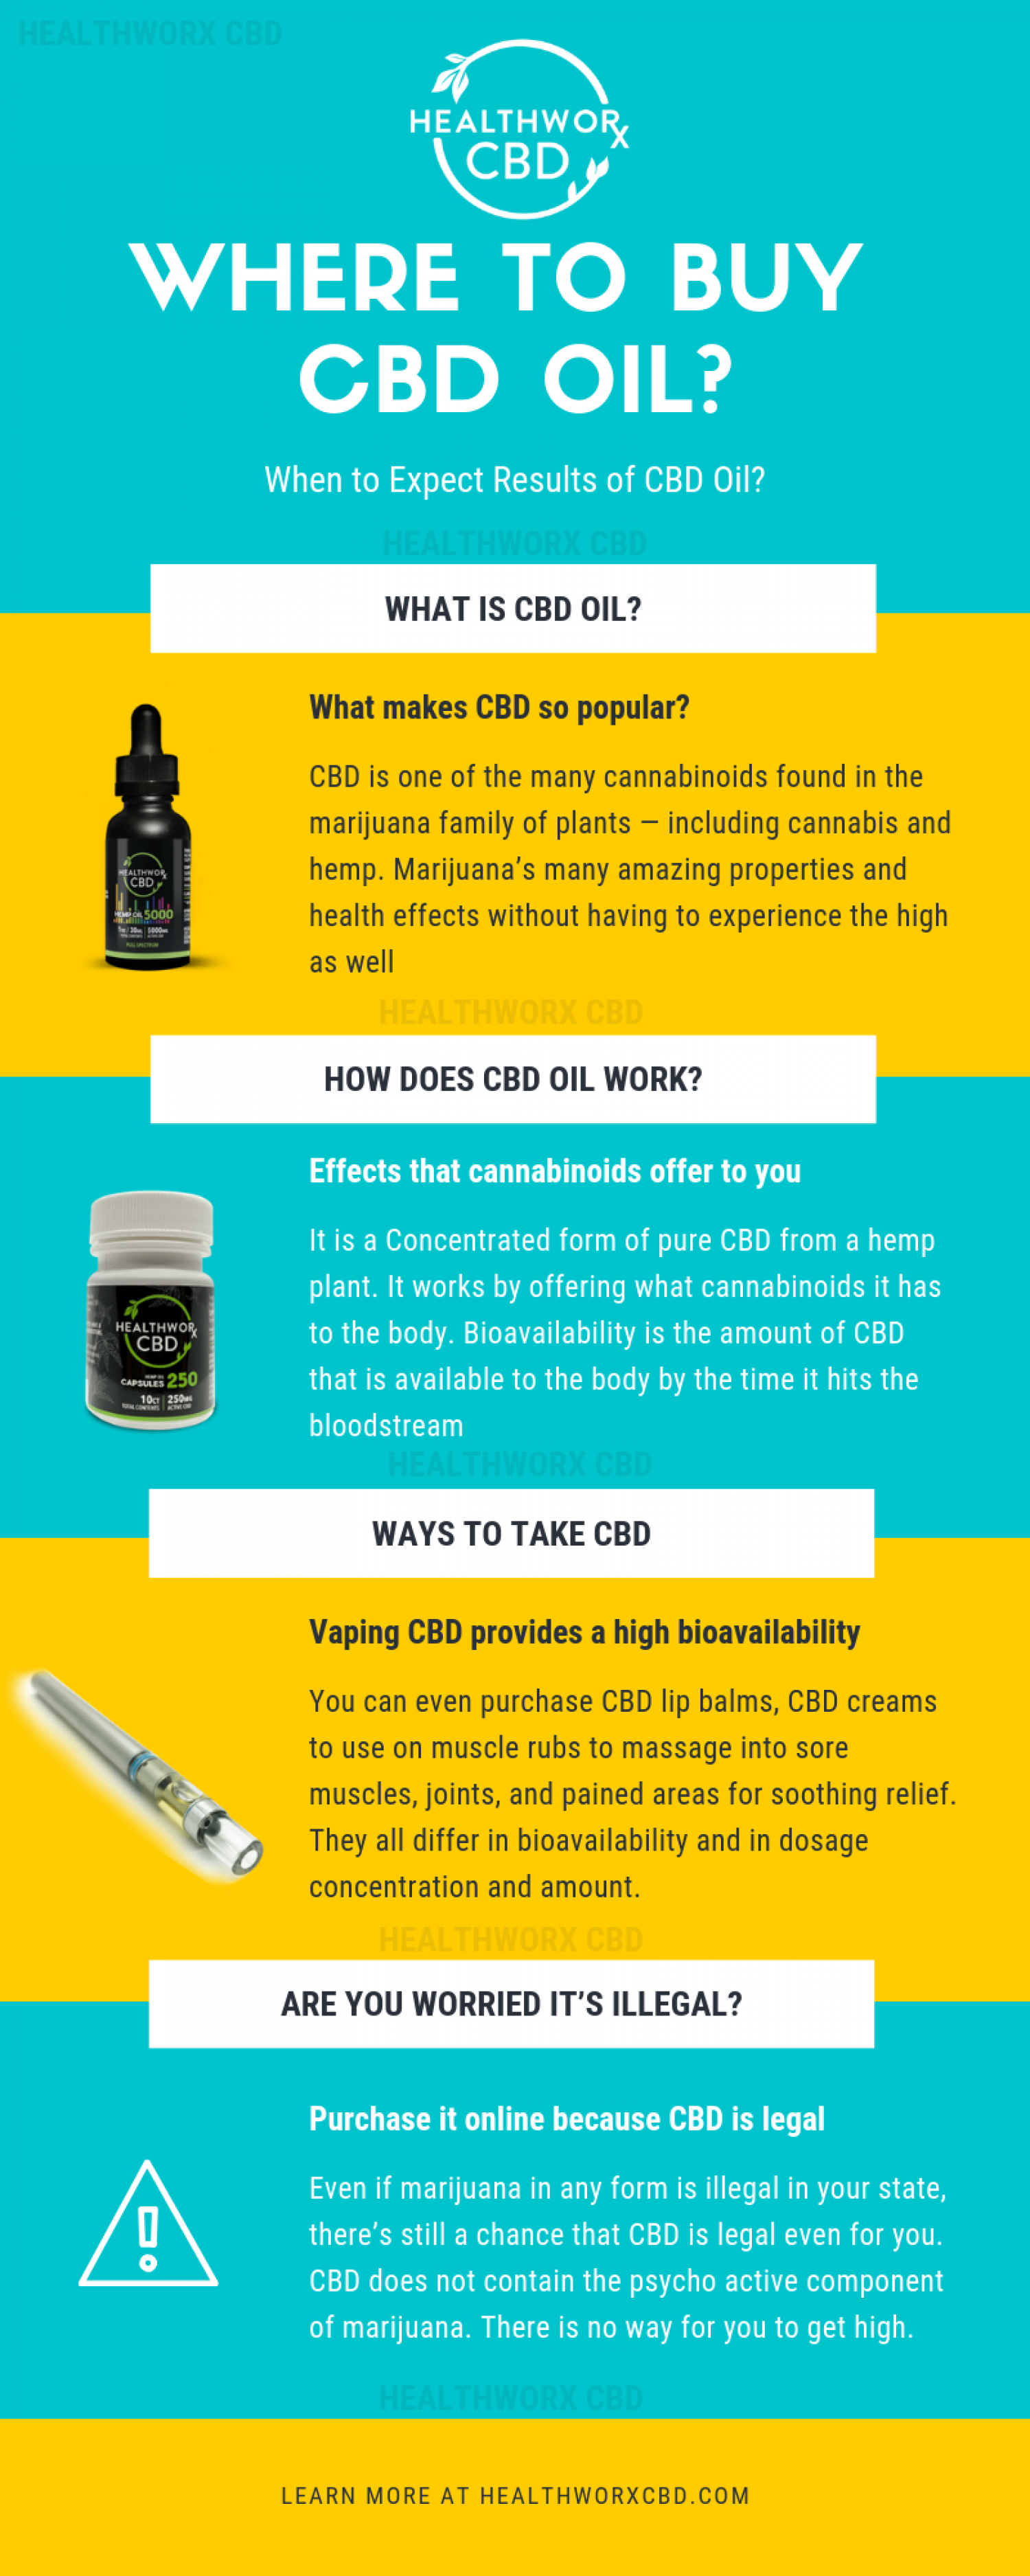 When to Expect Results of CBD Oil Infographic